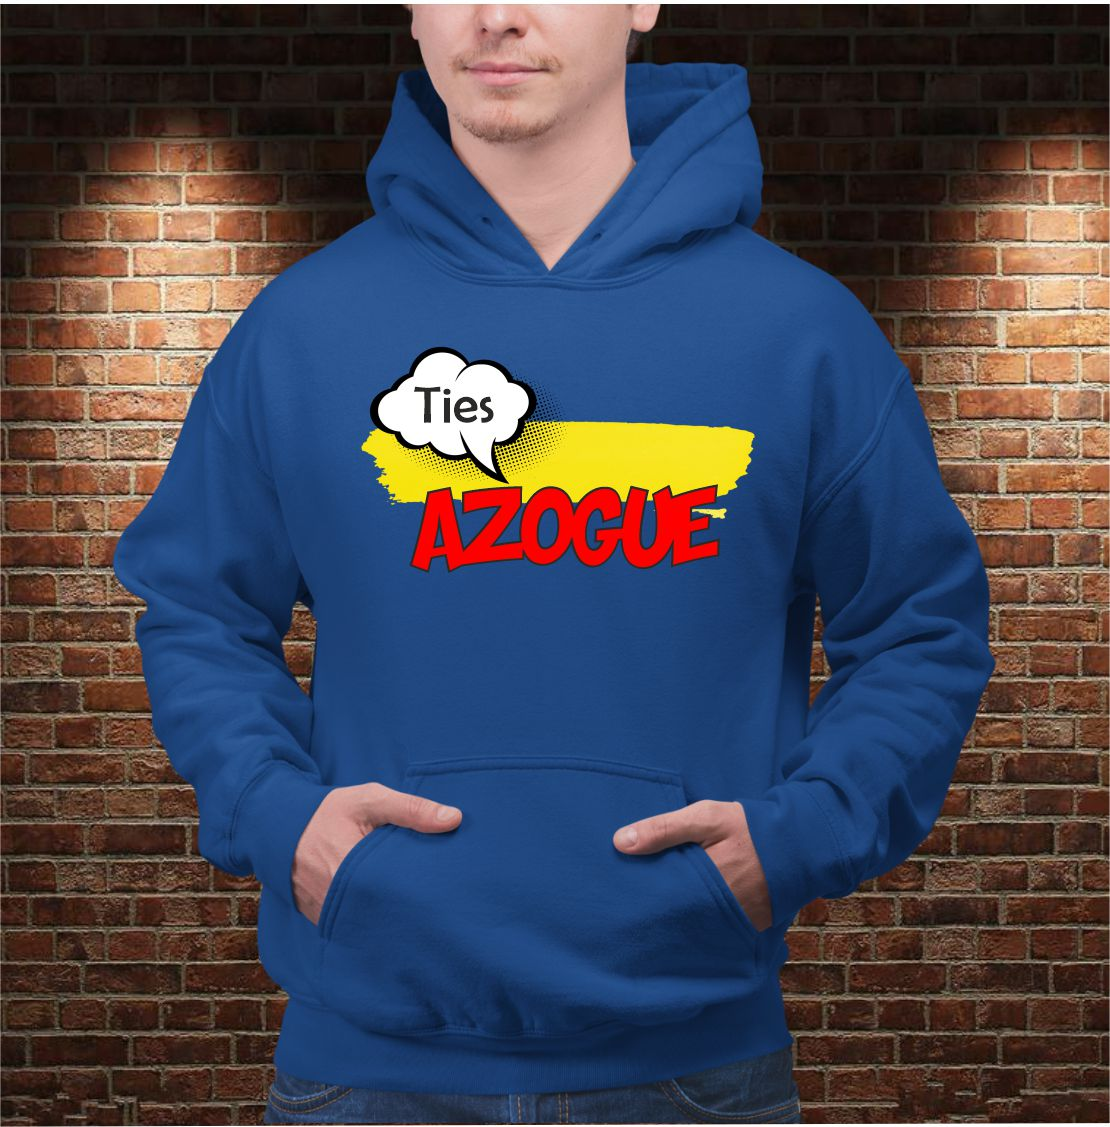 SUDADERA AZOGUE